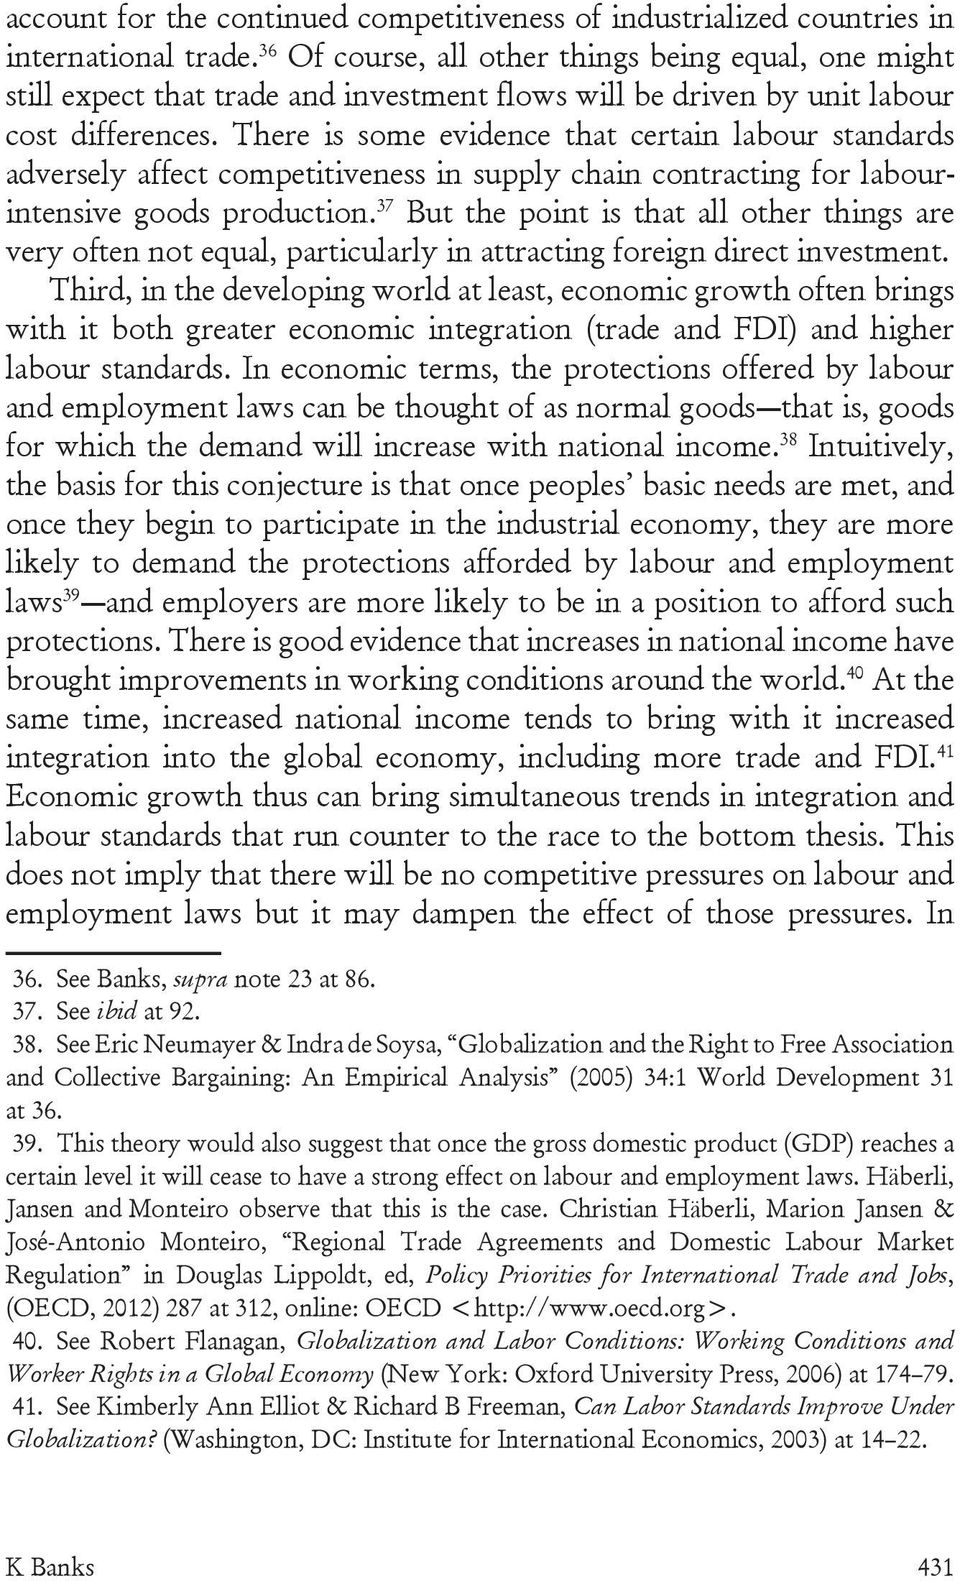 There is some evidence that certain labour standards adversely affect competitiveness in supply chain contracting for labourintensive goods production.